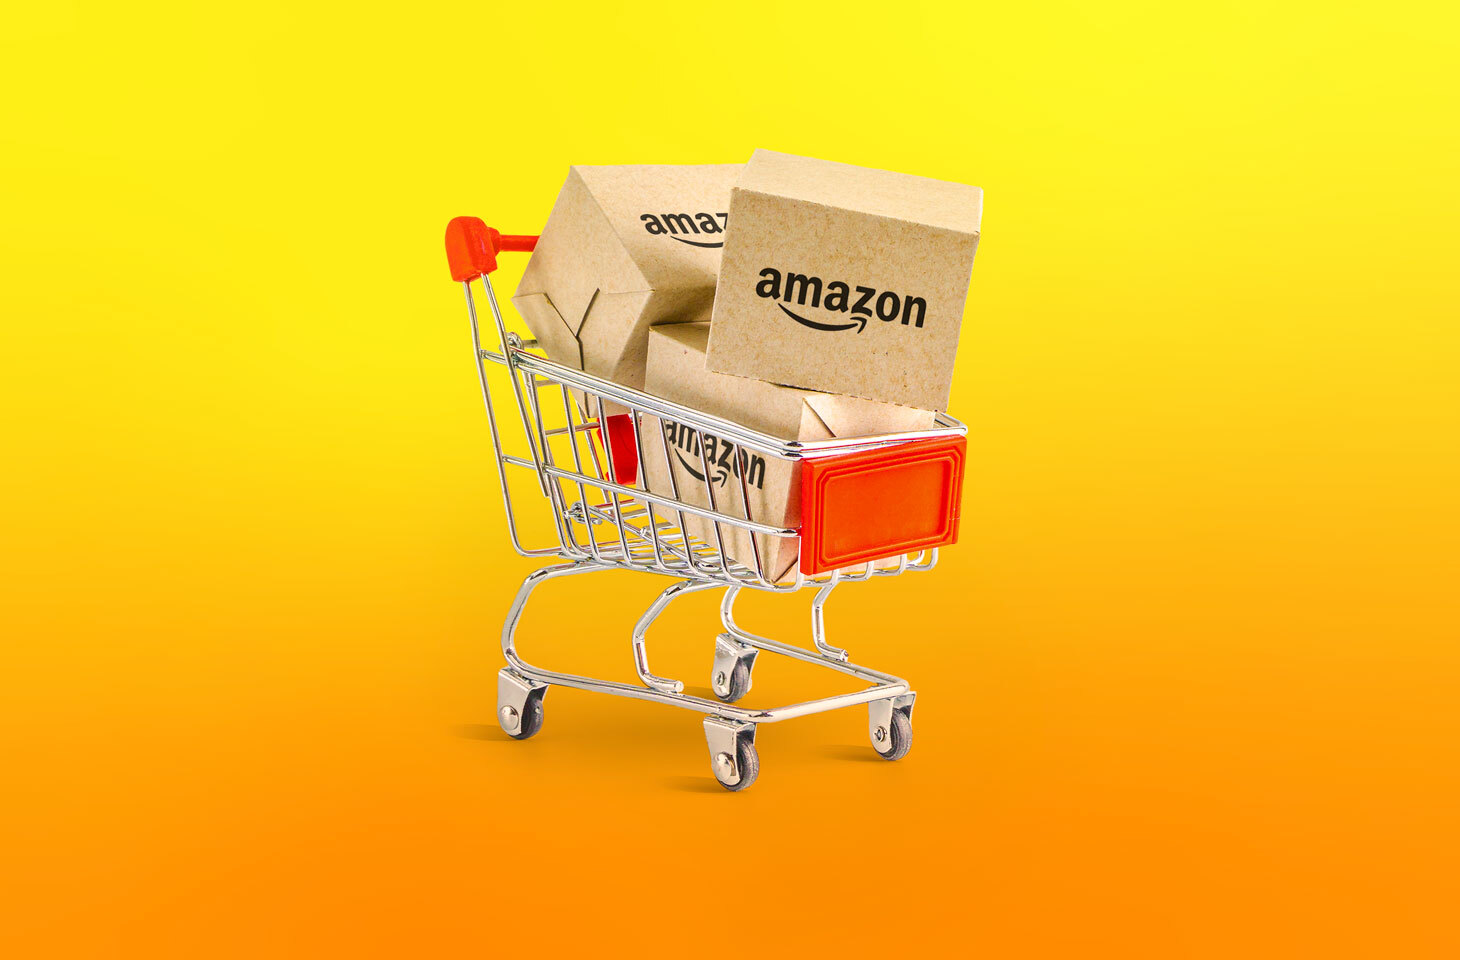 Some of the most commonly encountered Internet scams related to Amazon